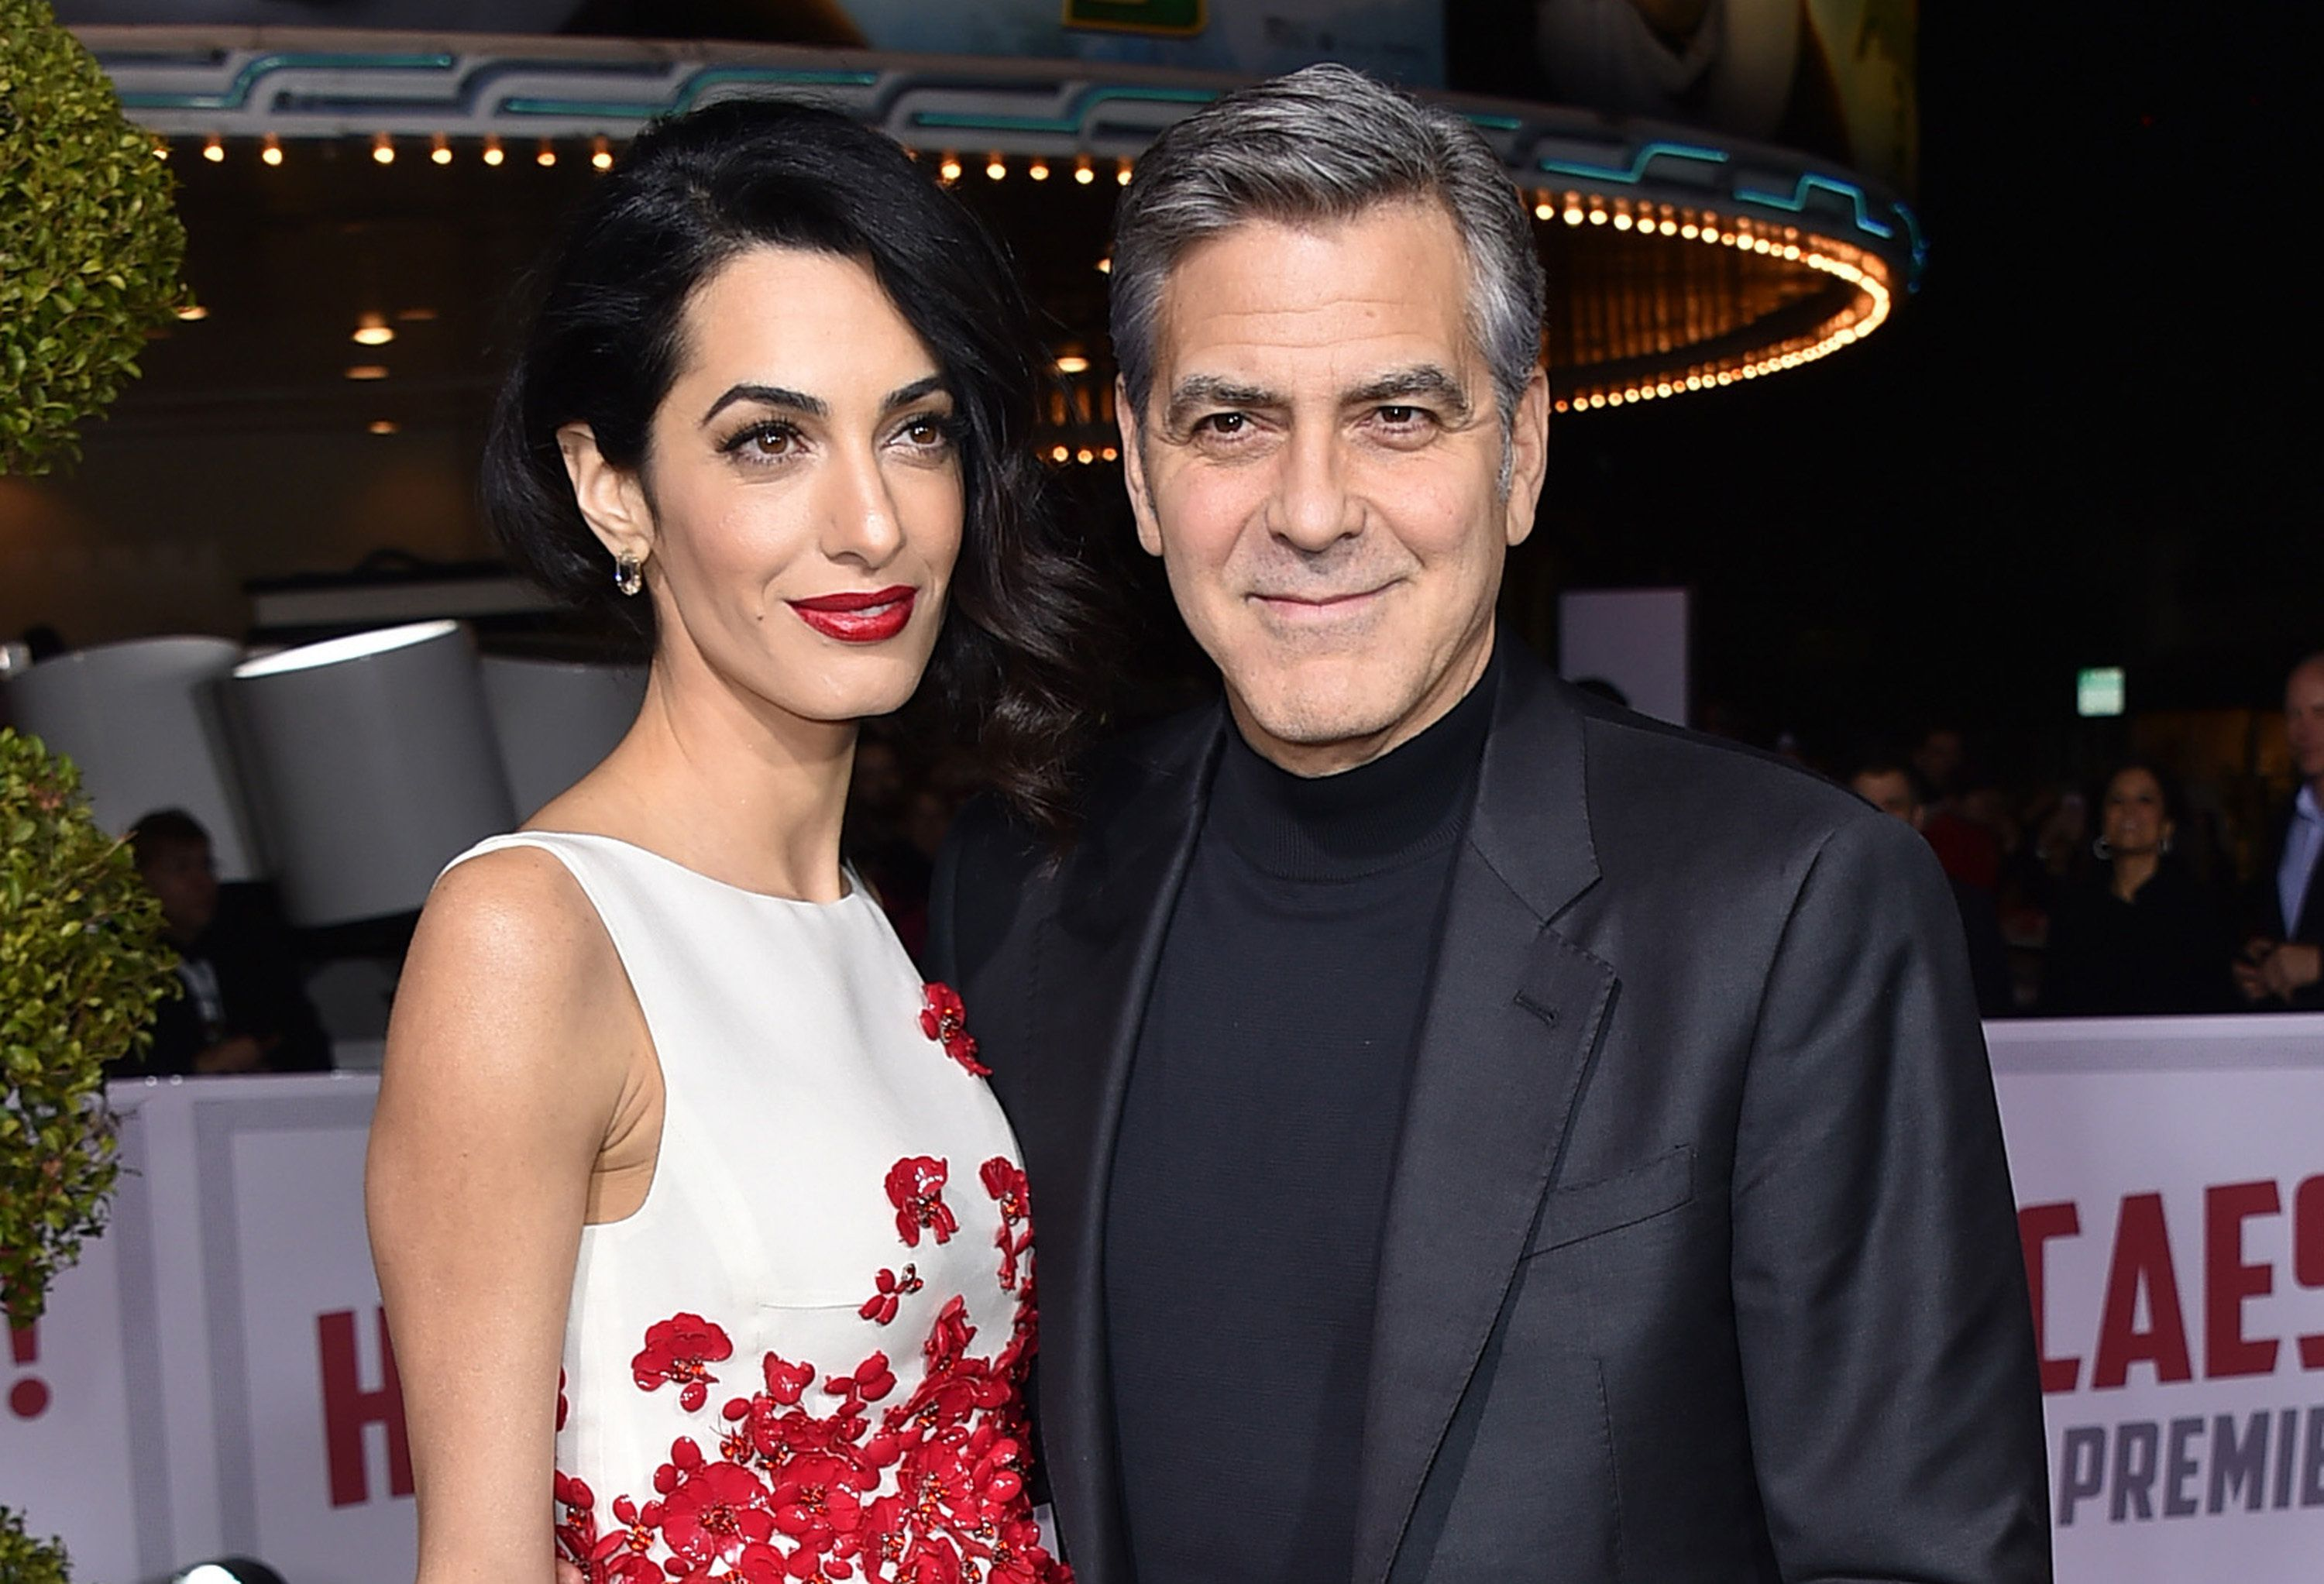 Amal Clooney Pregnant With